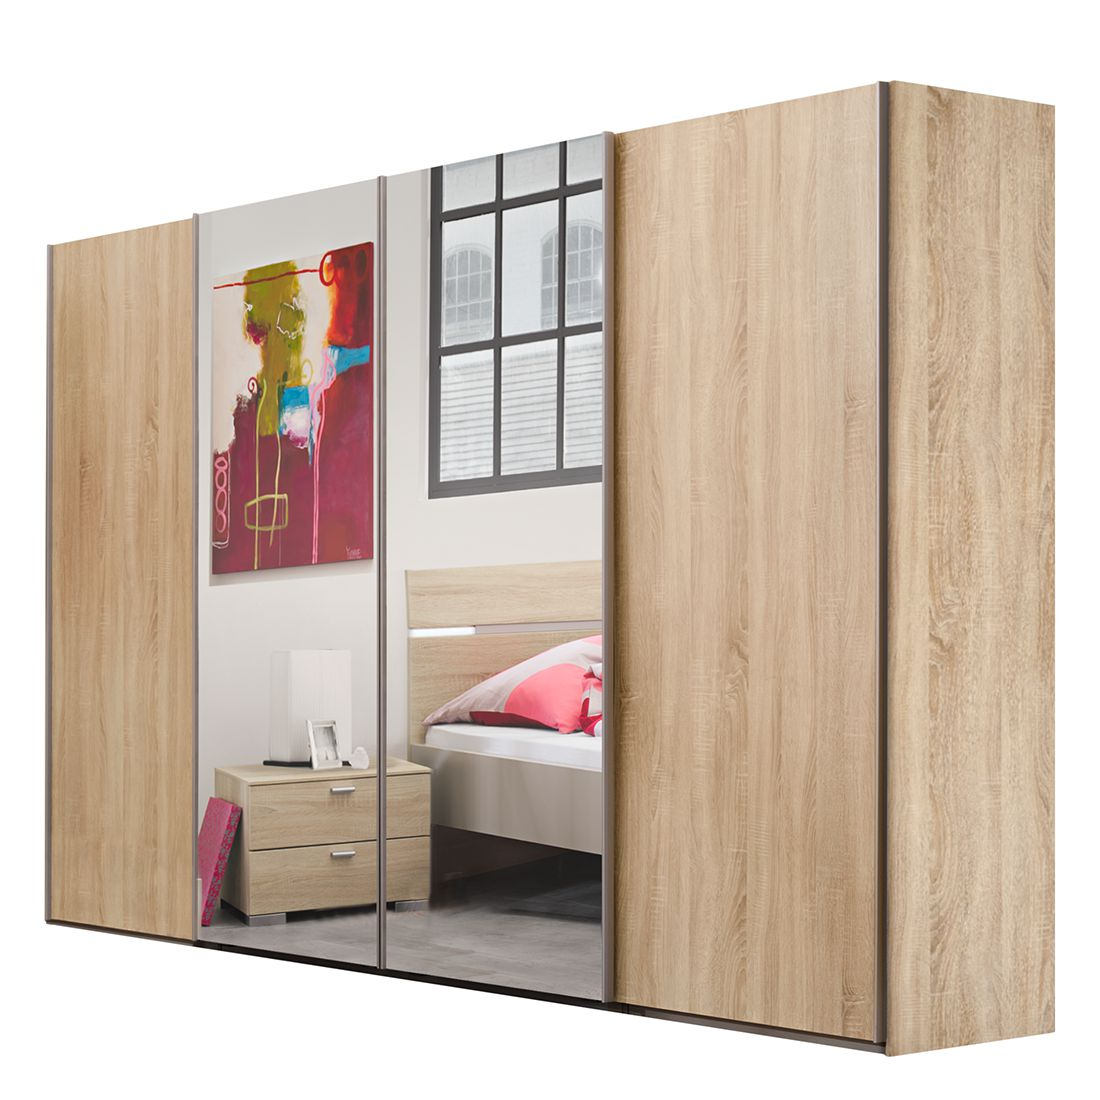 schwebet renschrank synkro i eiche dekor kristallspiegel schrankbreite 252 cm 4 t rig. Black Bedroom Furniture Sets. Home Design Ideas